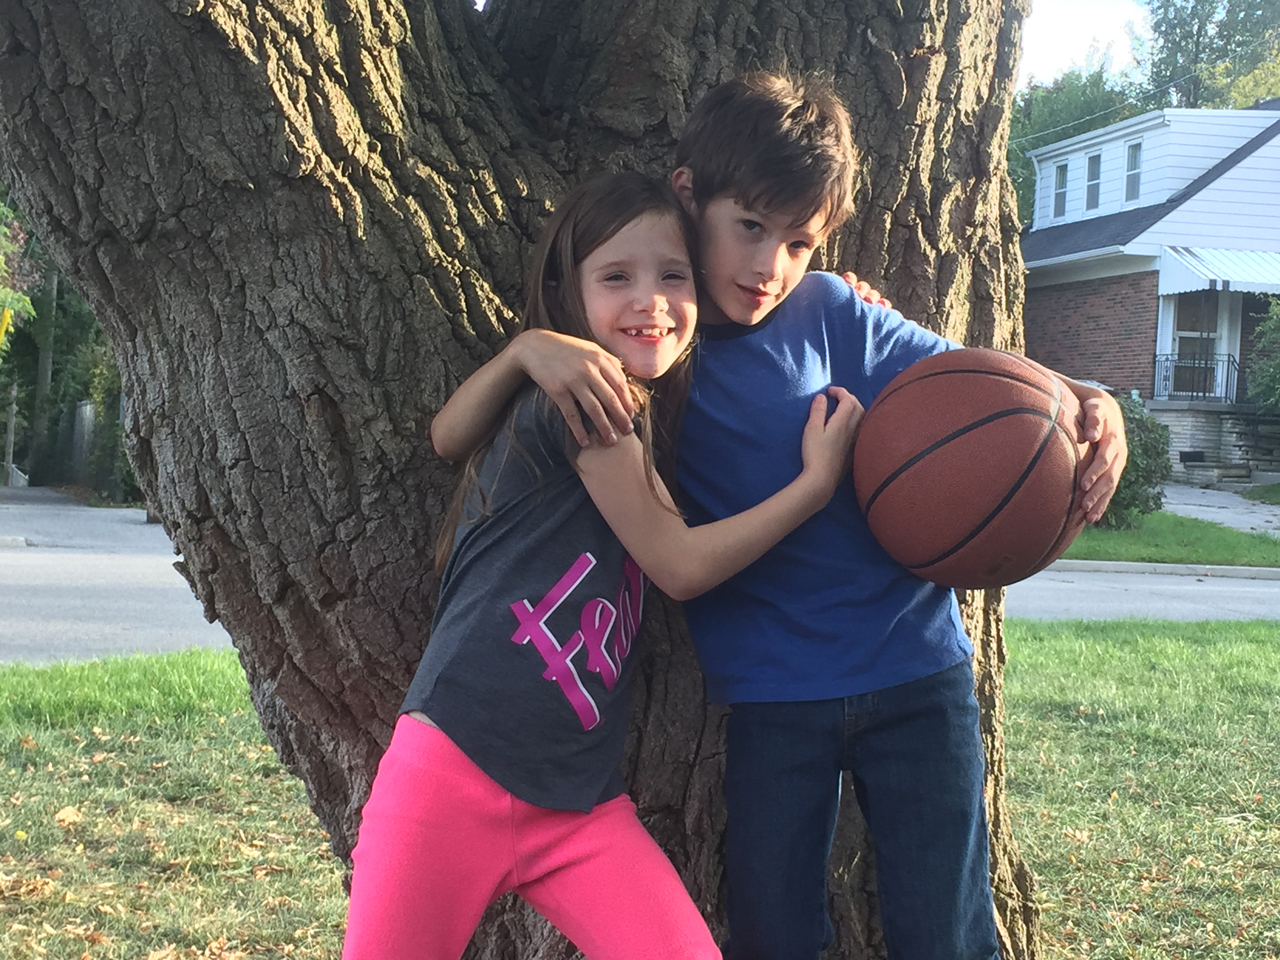 A brother and sister hugging outdoors